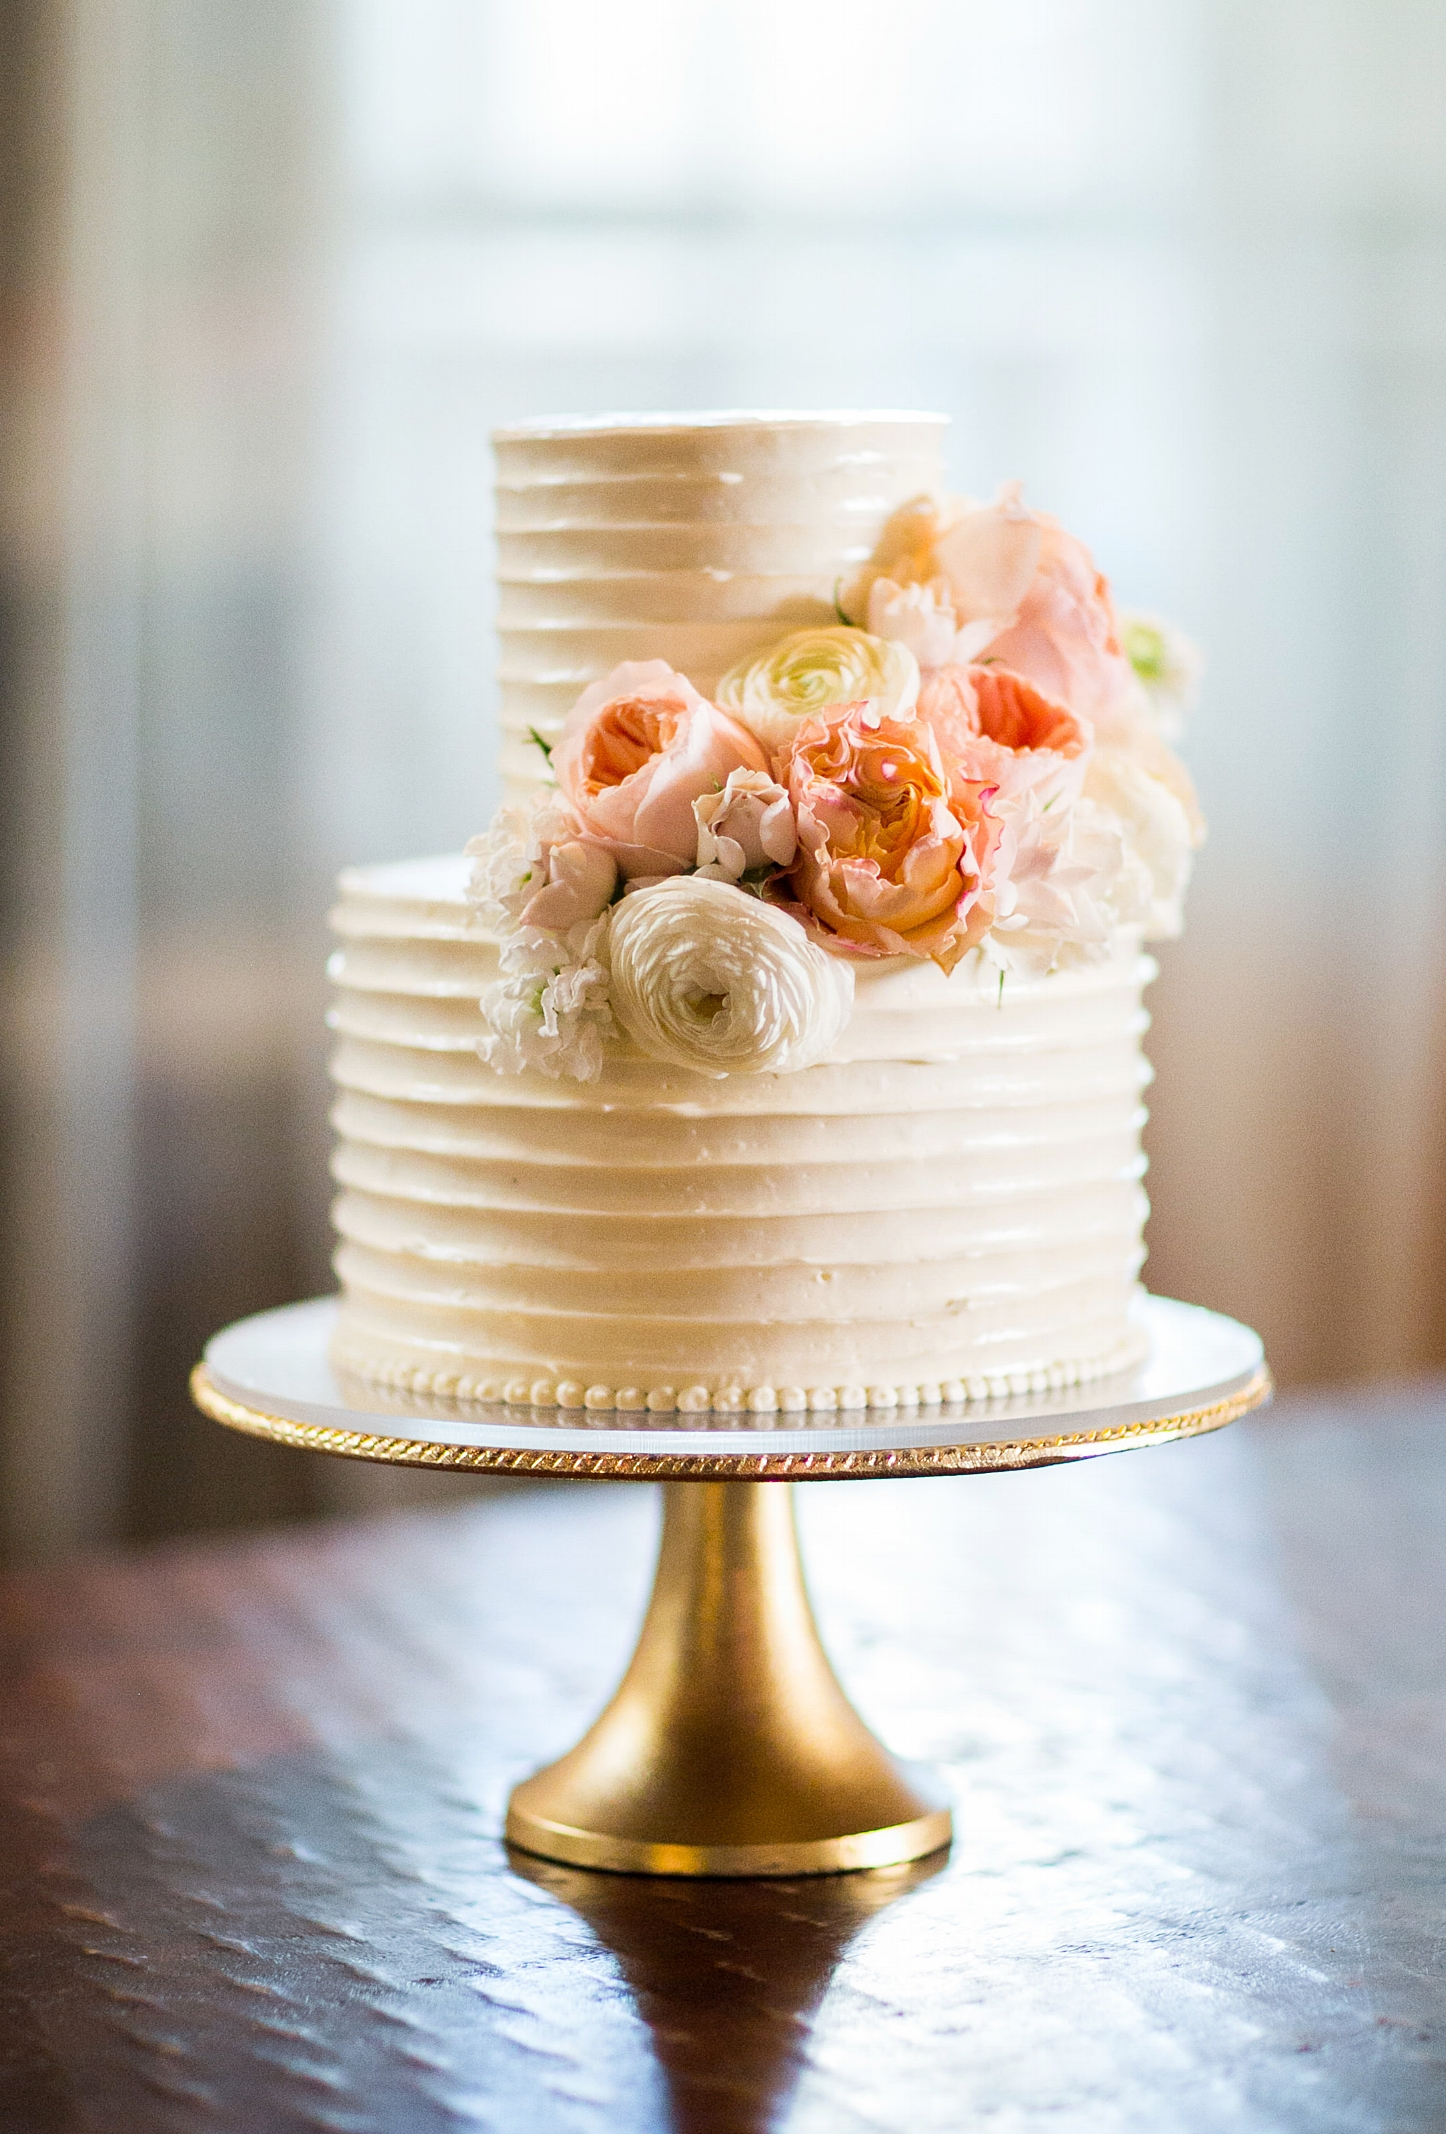 Pleated Buttercream Two-Tiered Cake with Fresh Flowers. Image copyright The Popes Photographers